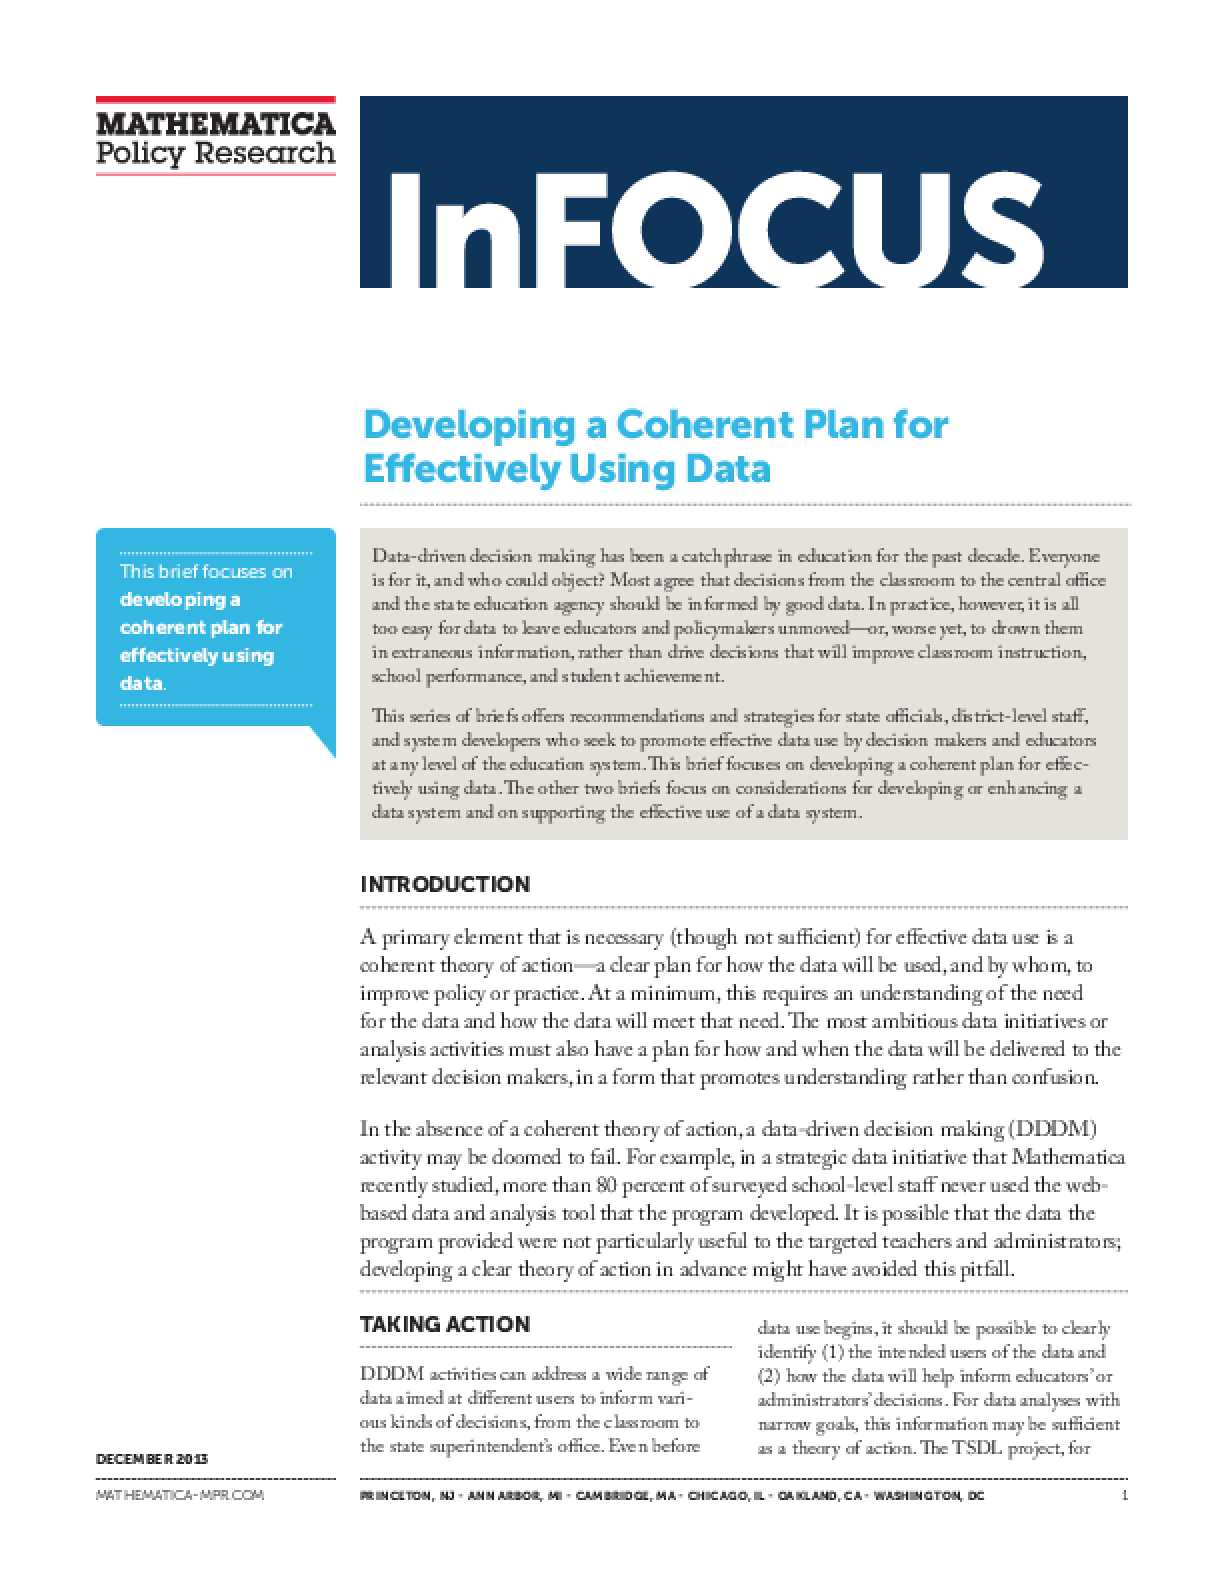 Developing a Coherent Plan for Effectively Using Data